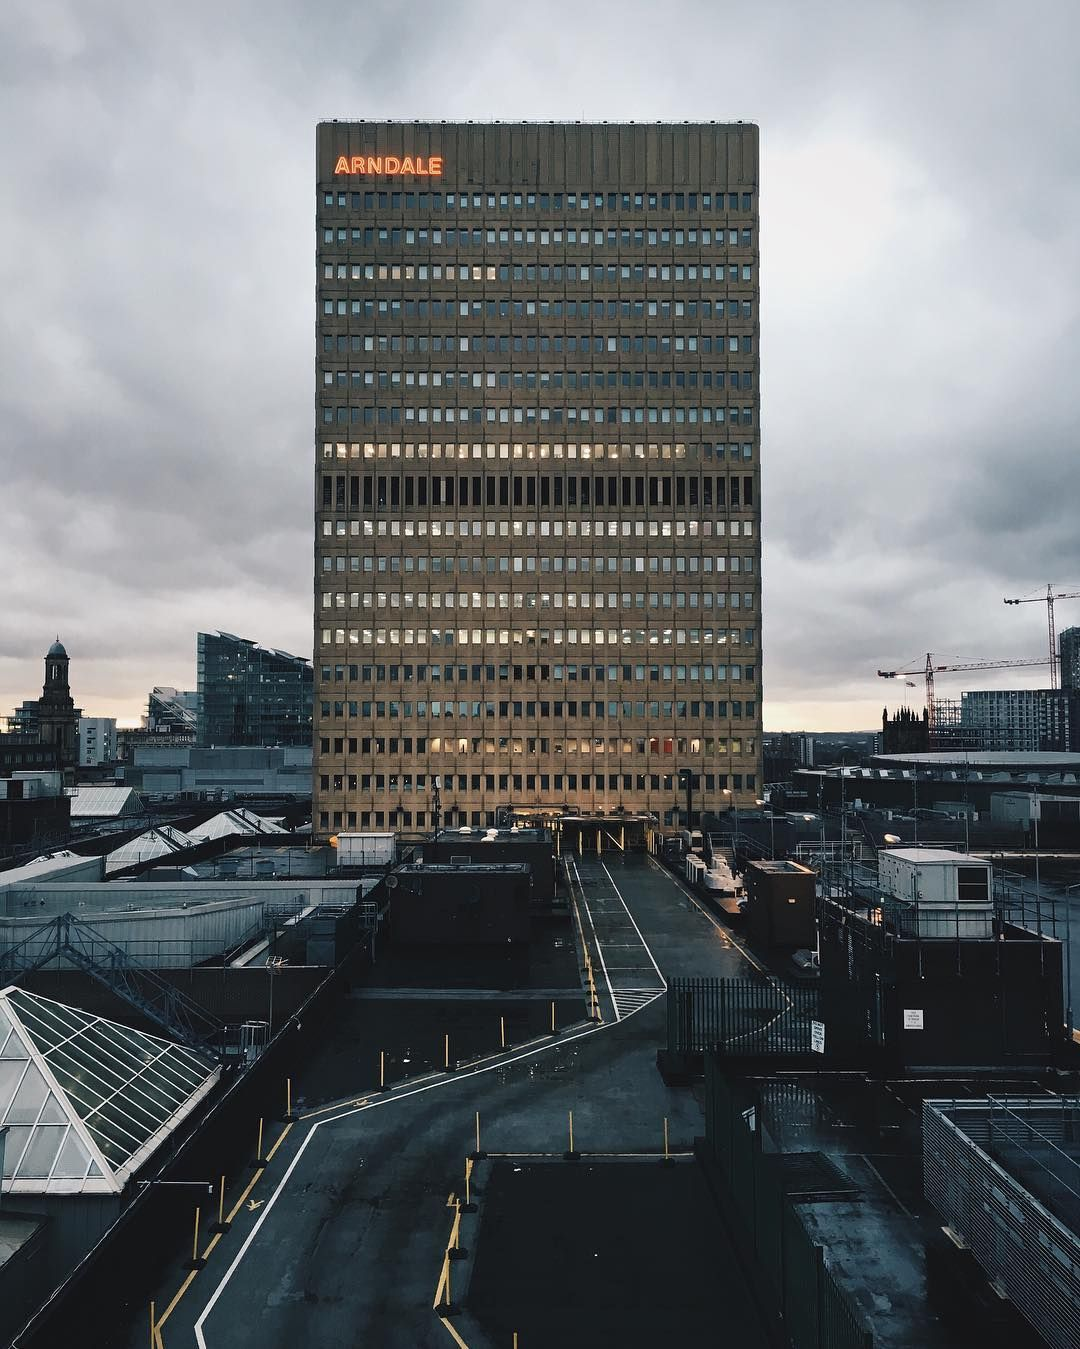 The famous and infamous Arndale House.